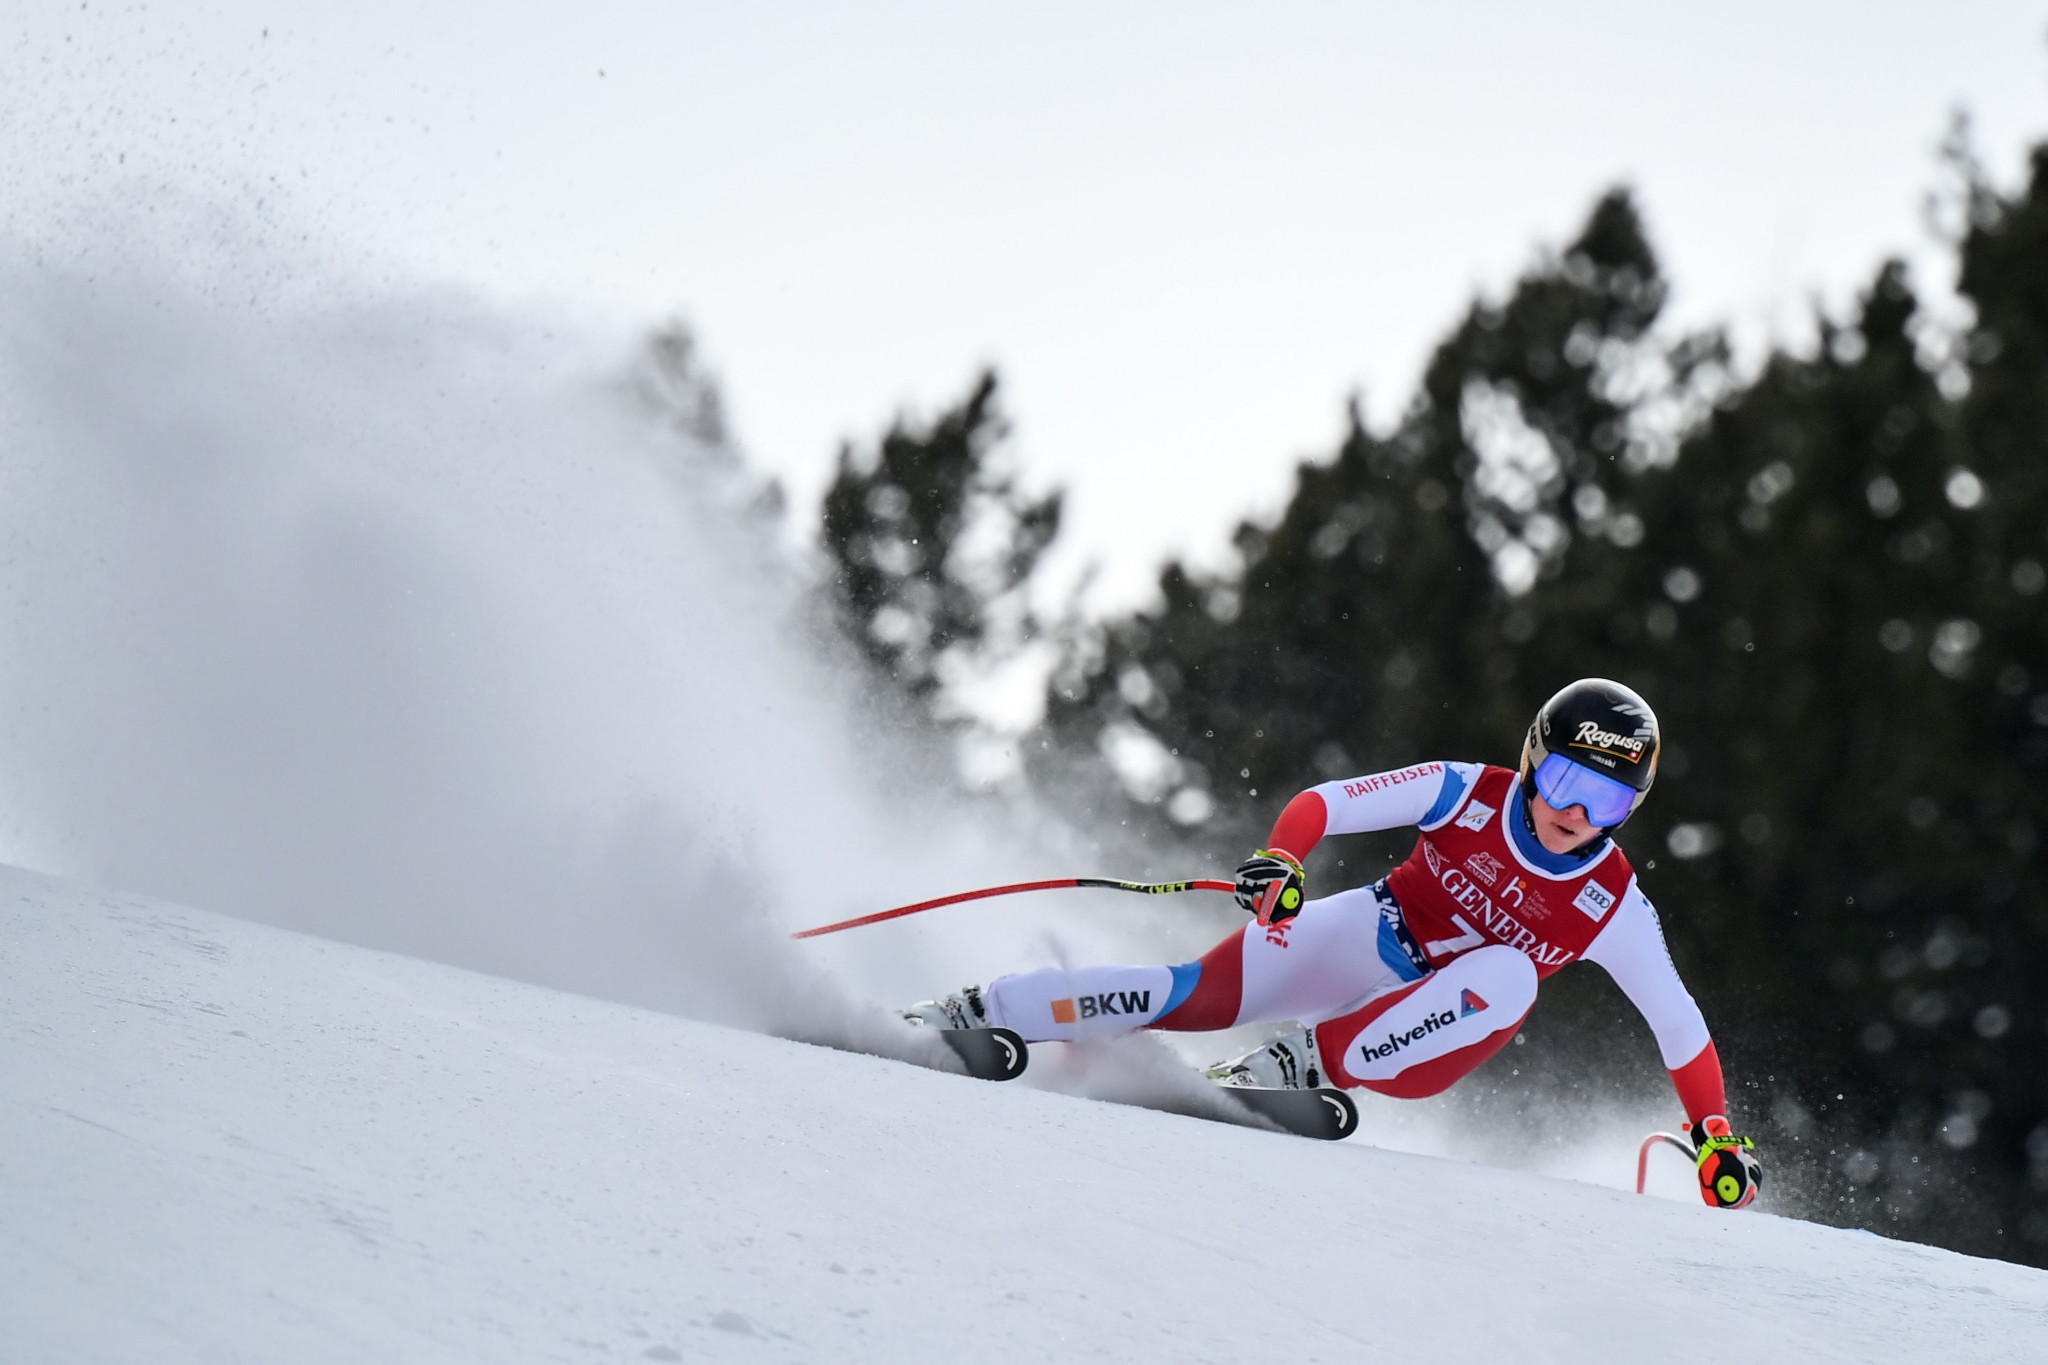 Gut-Behrami wins fourth World Cup race on the spin with Val di Fassi downhill triumph